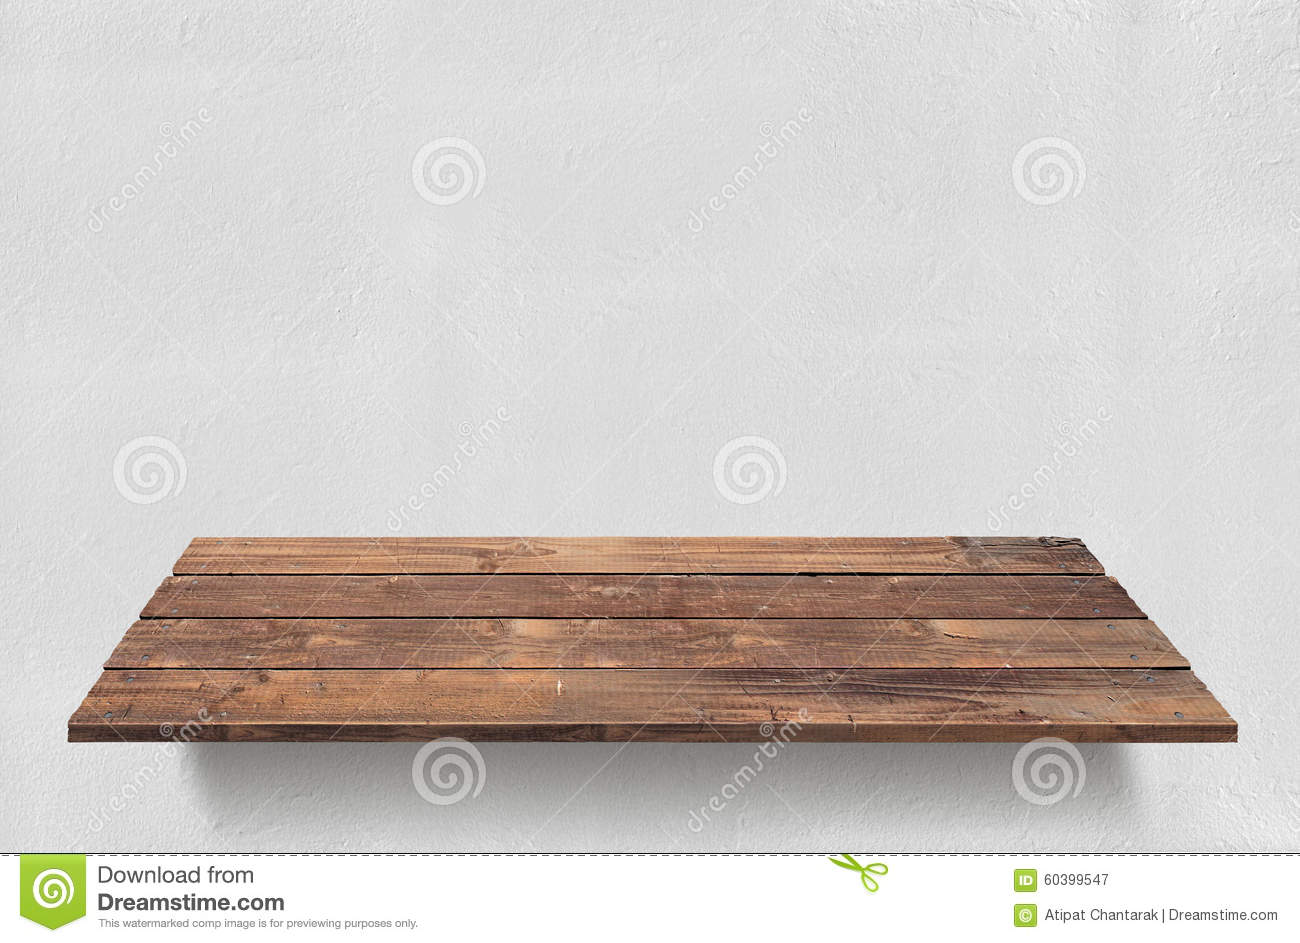 Wood Plank Table With White Concrete Wall Background Stock Photo